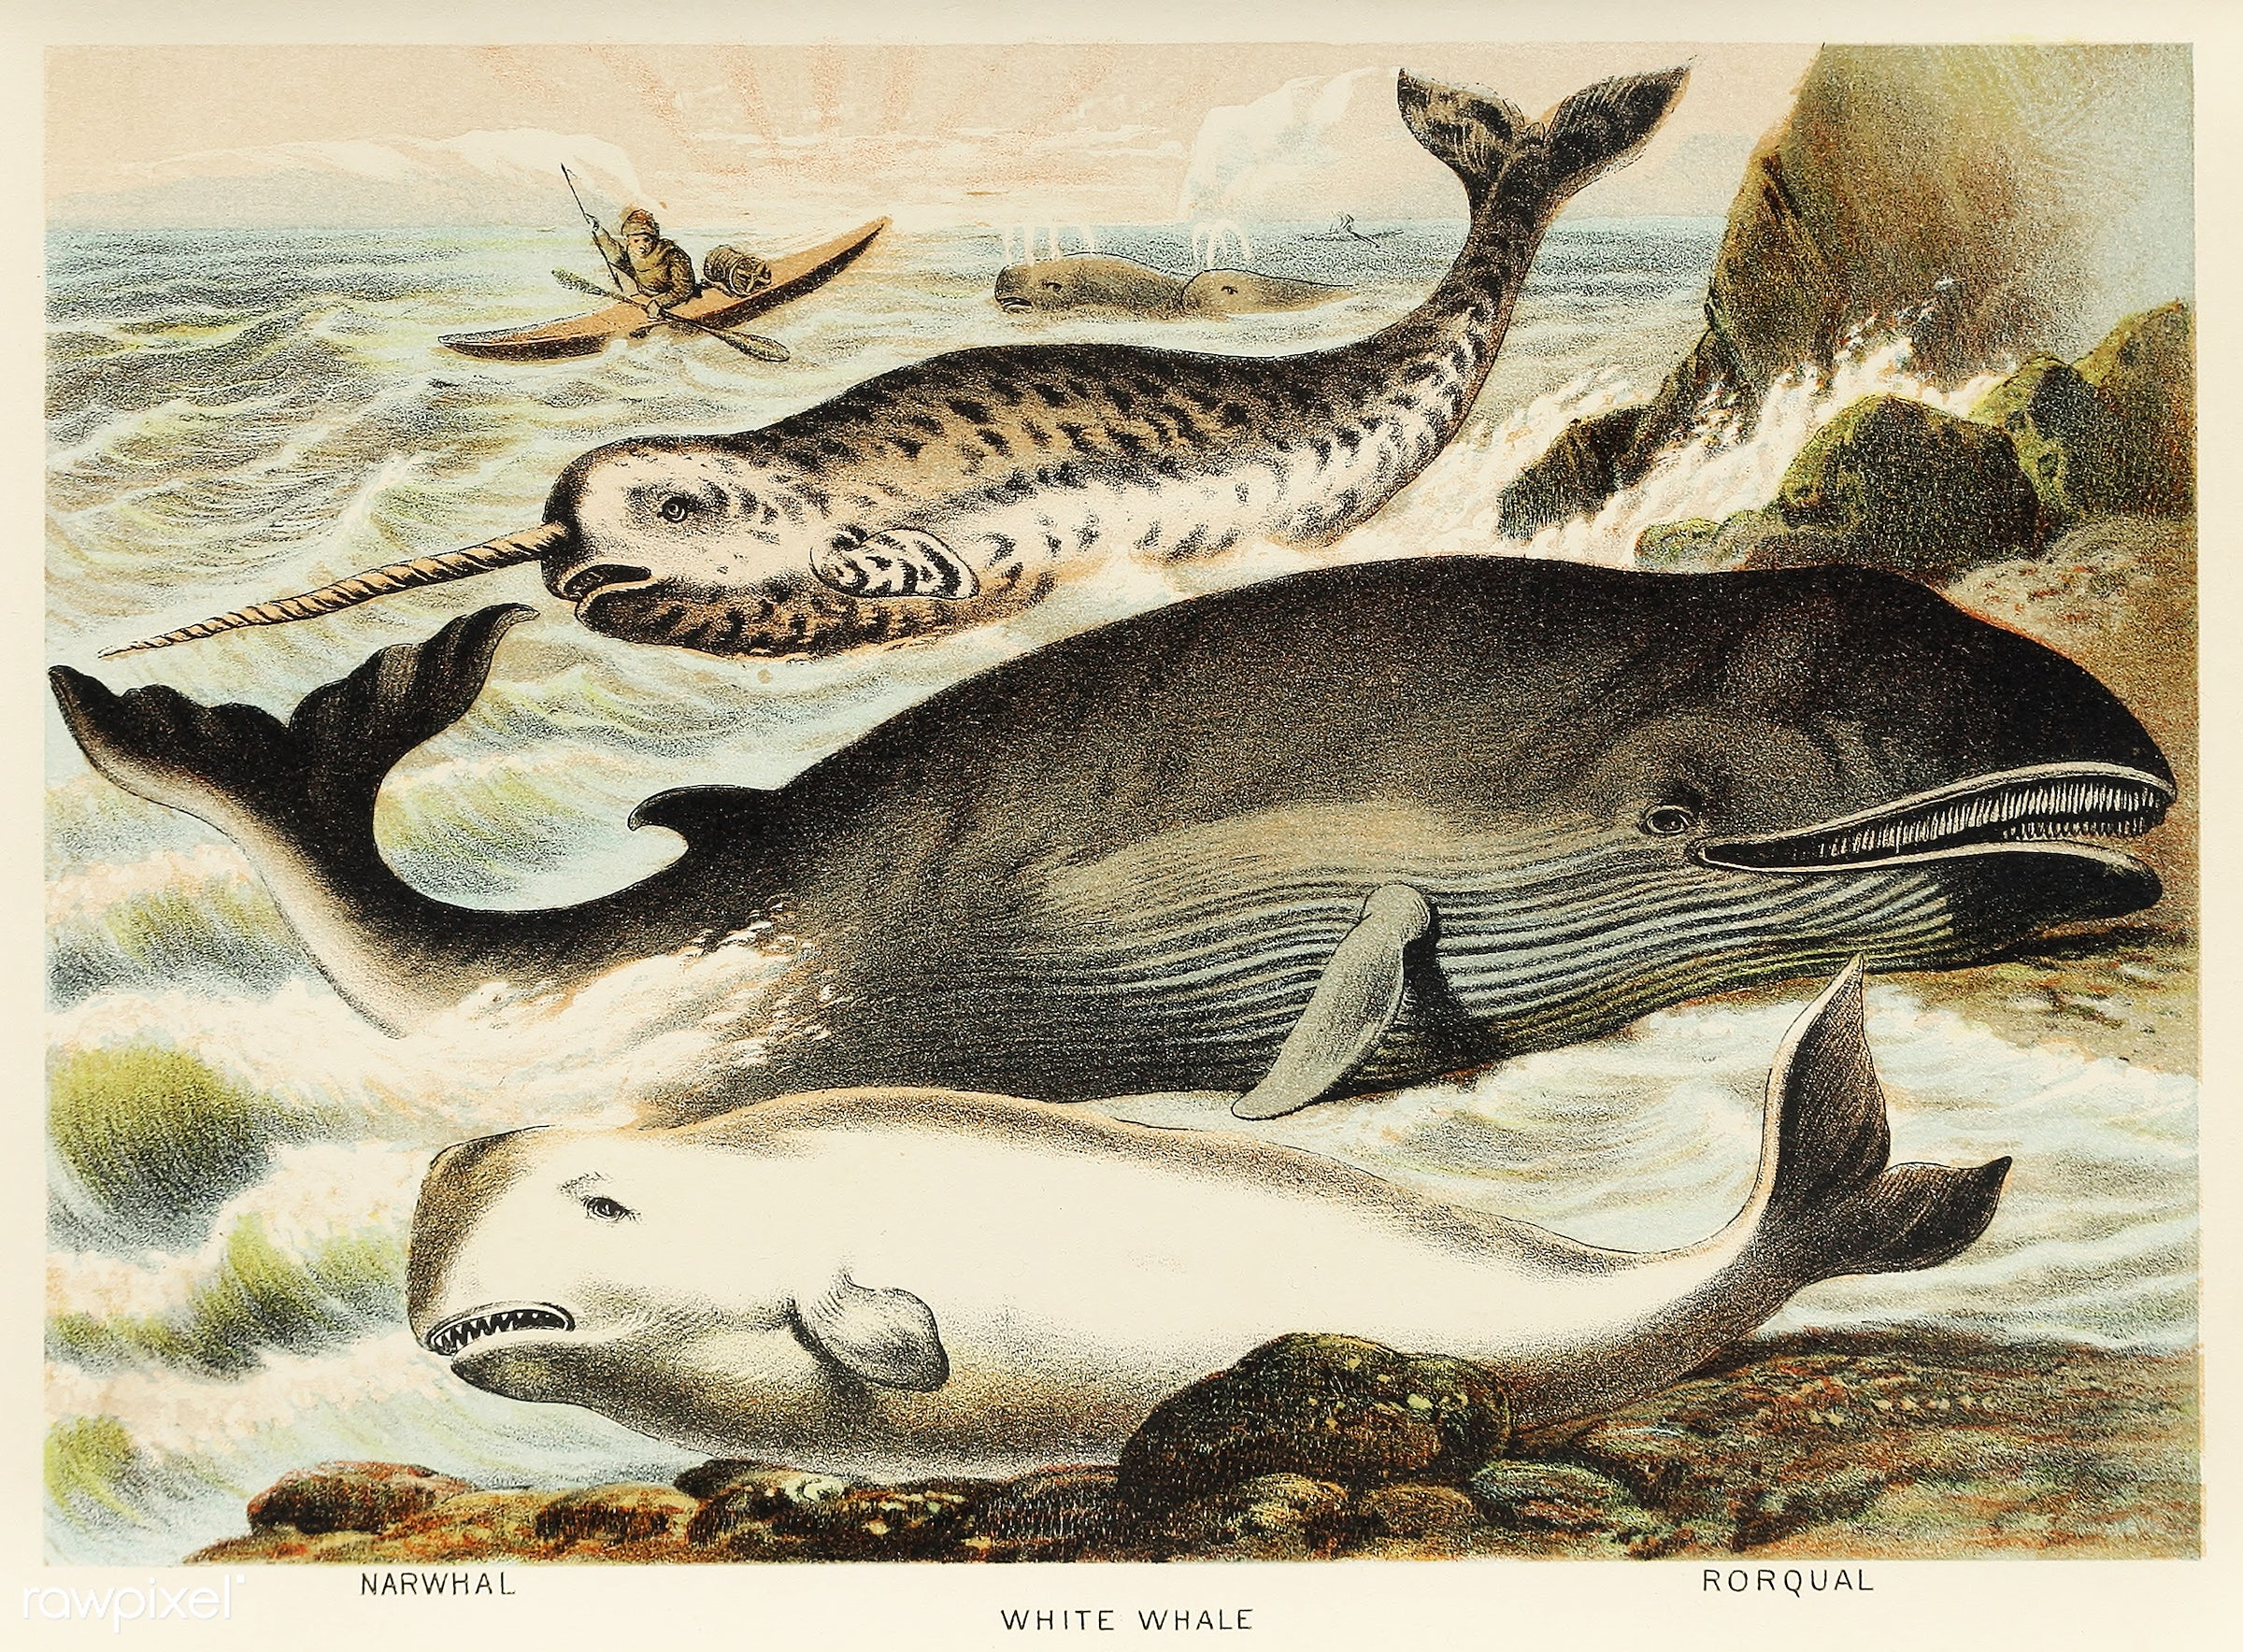 Narwhal, White whale, and Rorqual from Johnson's household book of nature (1880) by John Karst (1836-1922). - animal,...